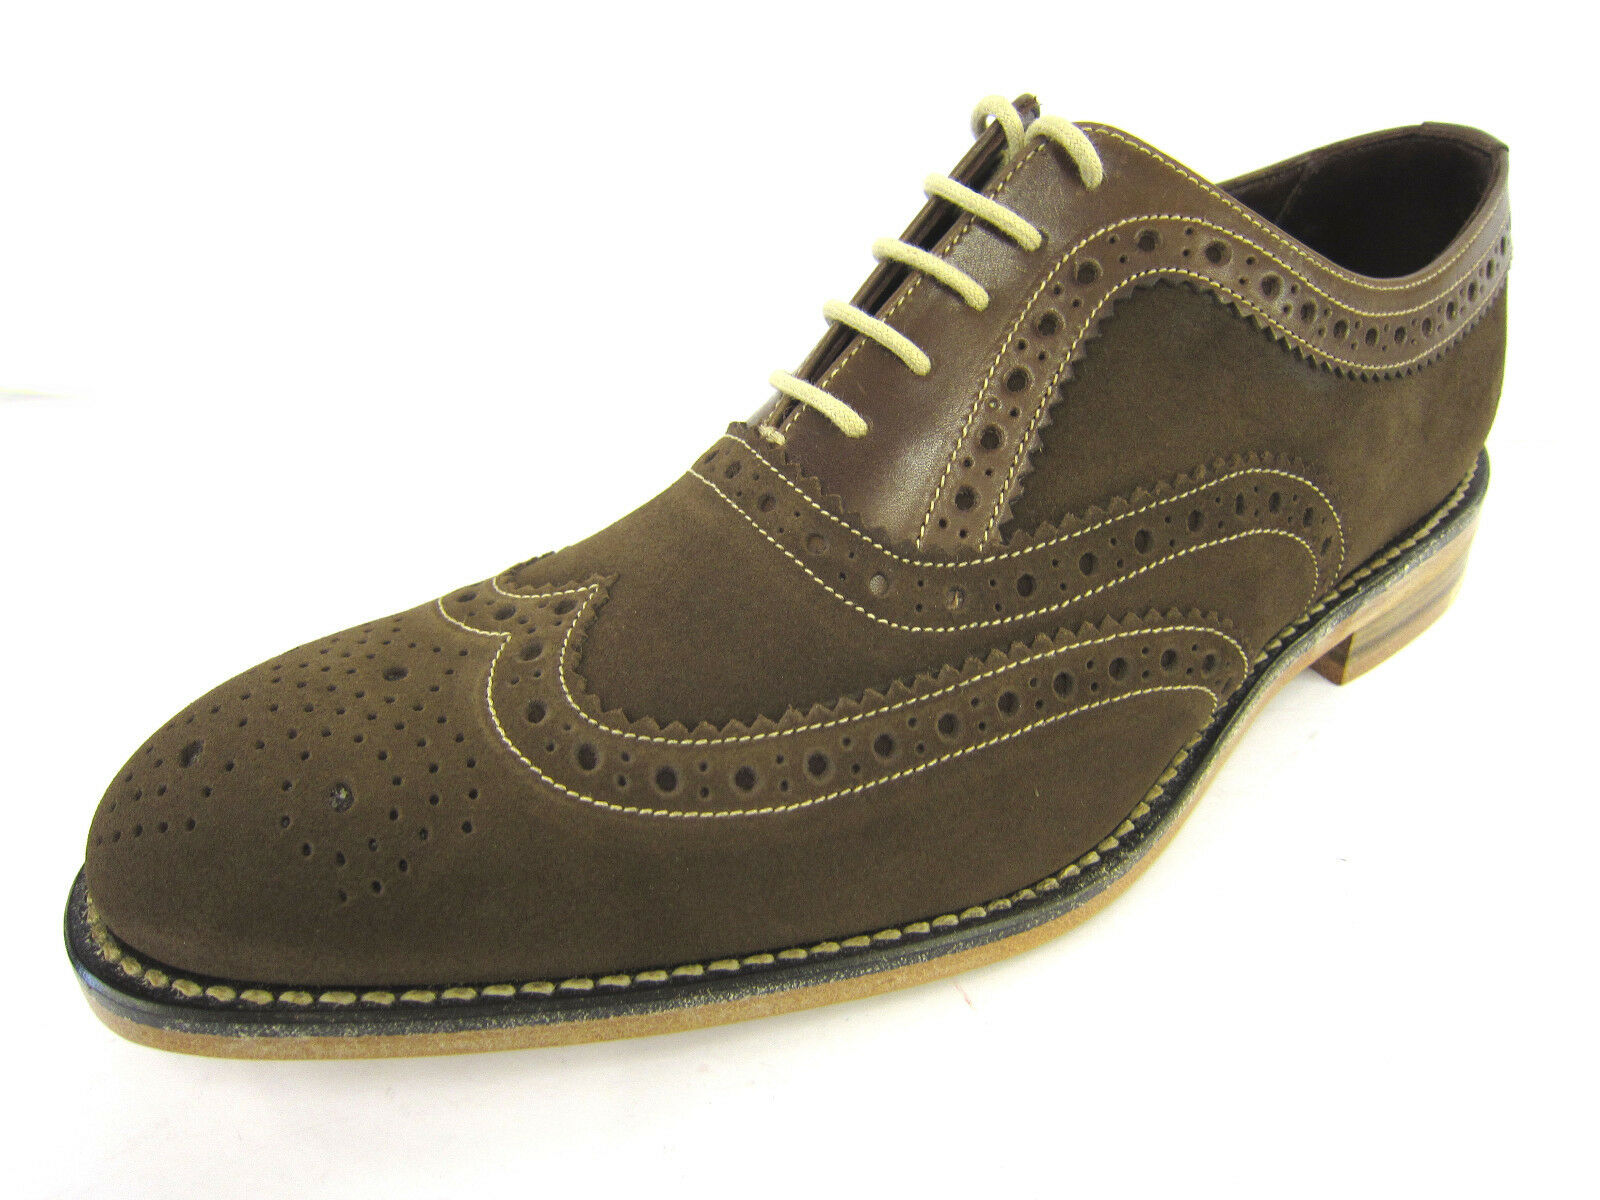 Uomo Loake Braun Up Suede & Leder Lace Up Braun Formal Brogue Schuhes F Fitting FLOYD 1776d2